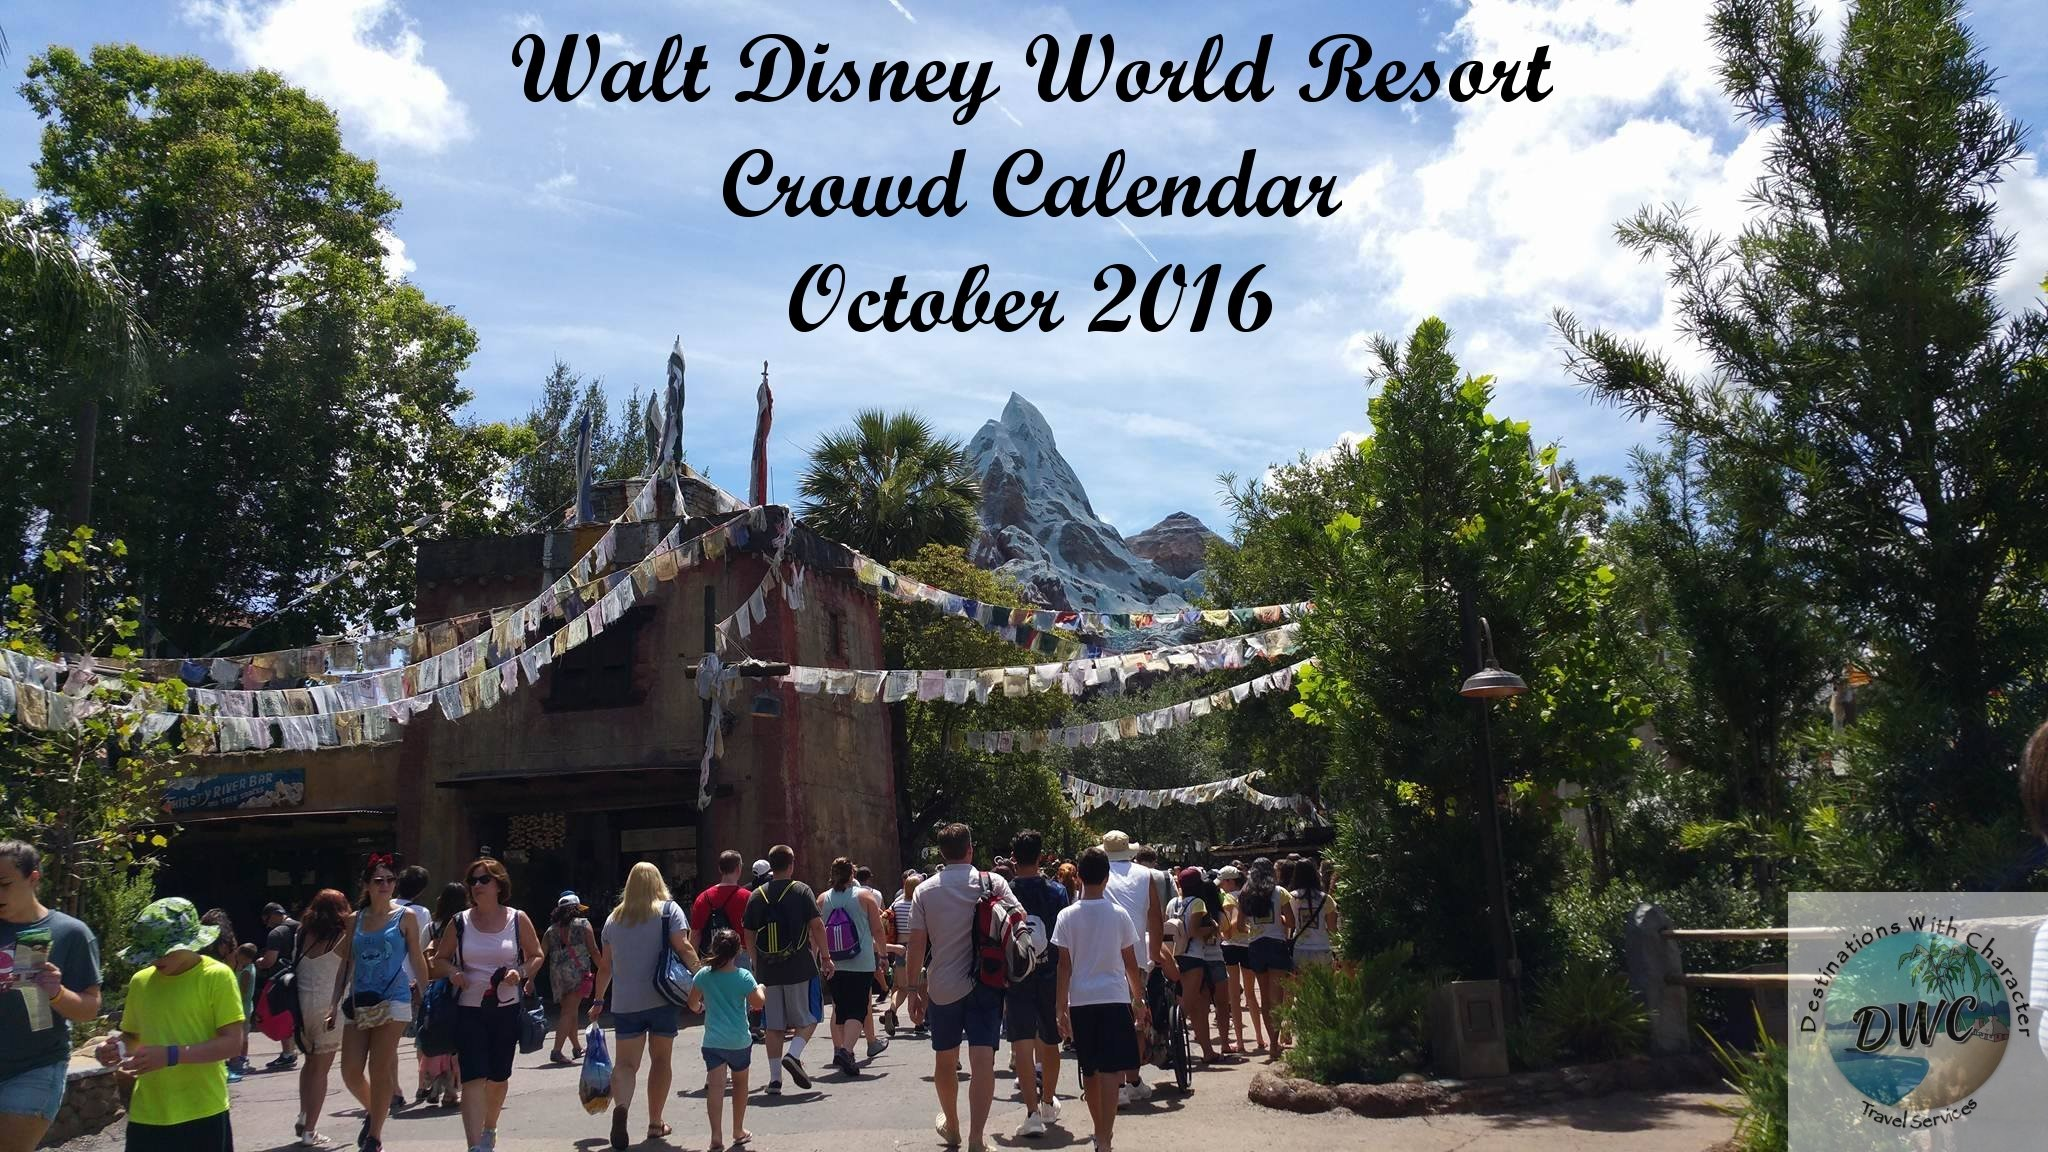 October 2016 Walt Disney World Resort Crowd Calendar